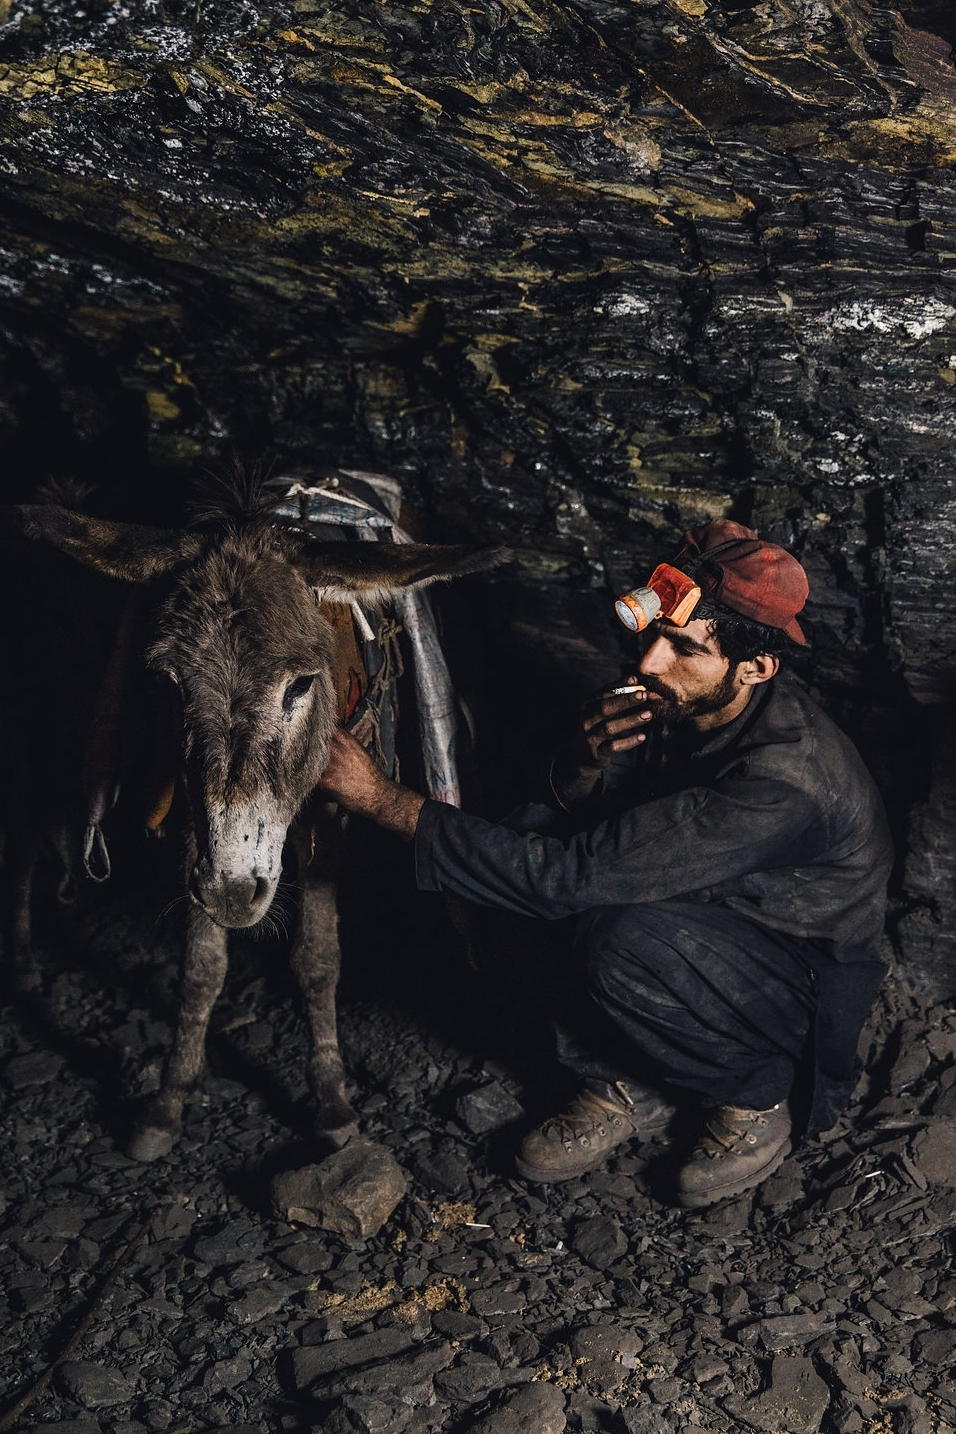 A day in the life in a coalmine. © Freya Dowson – Brooke